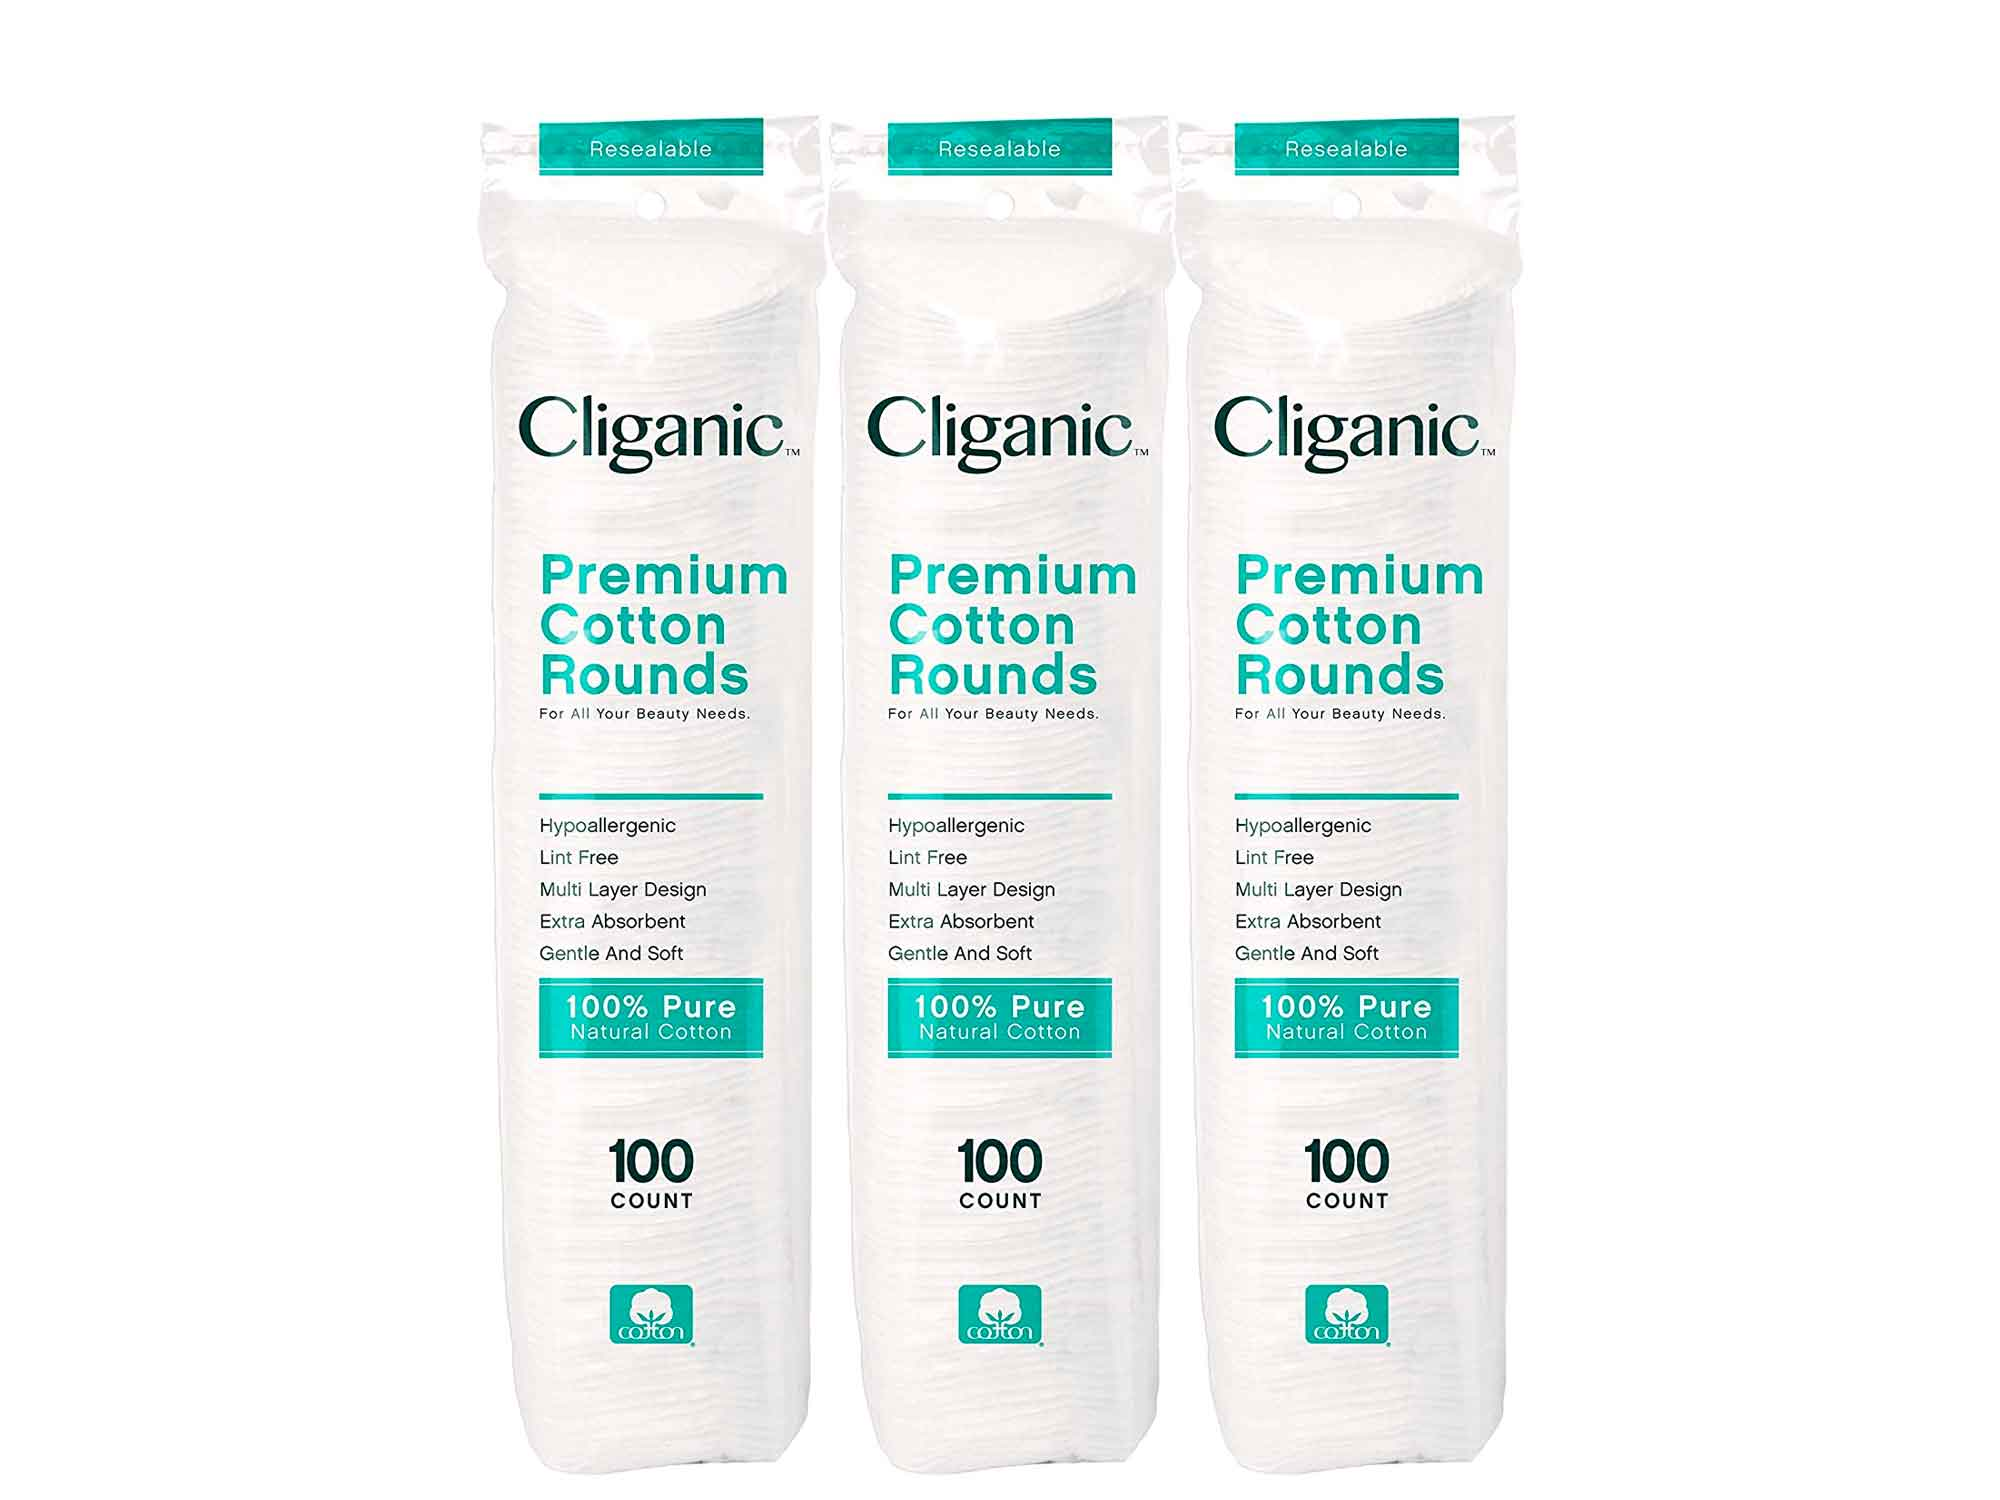 Cliganic Premium Cotton Rounds for Face (300 Count) - Makeup Remover Pads, Hypoallergenic, Lint-Free | 100% Pure Cotton